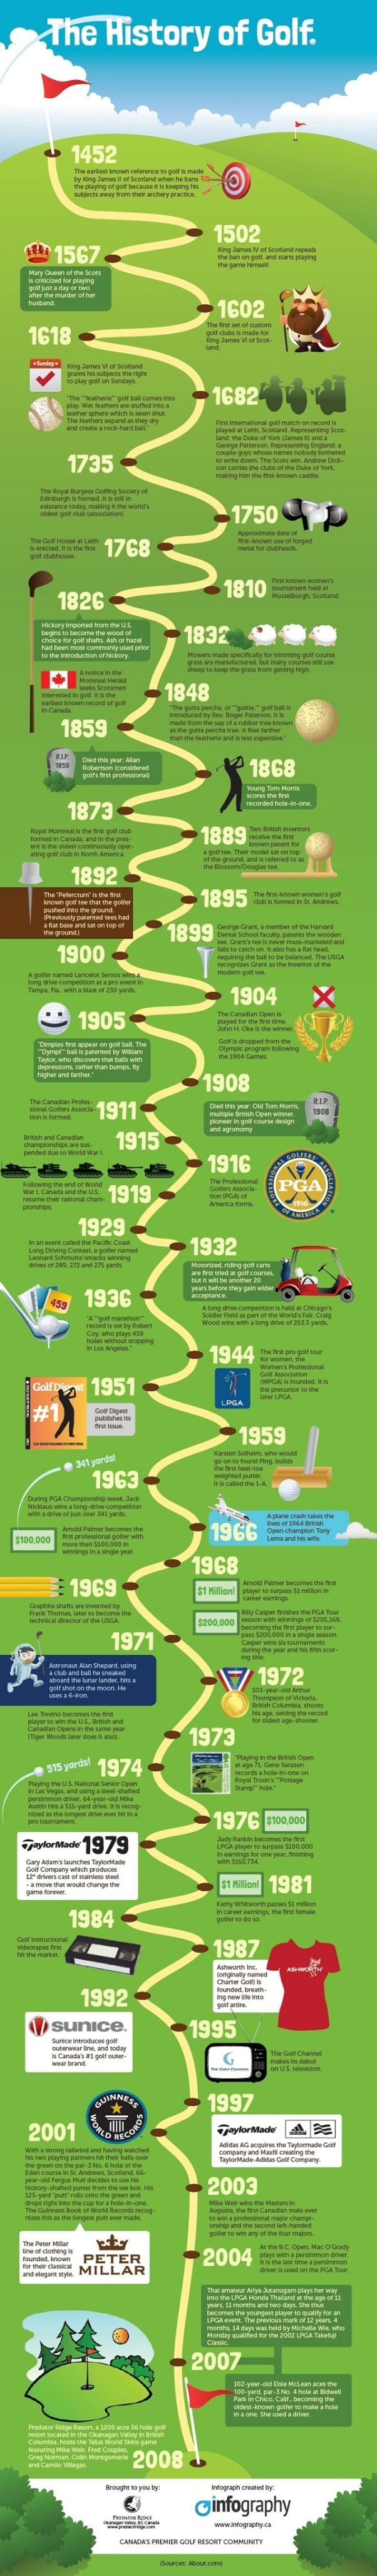 History of golf infographic